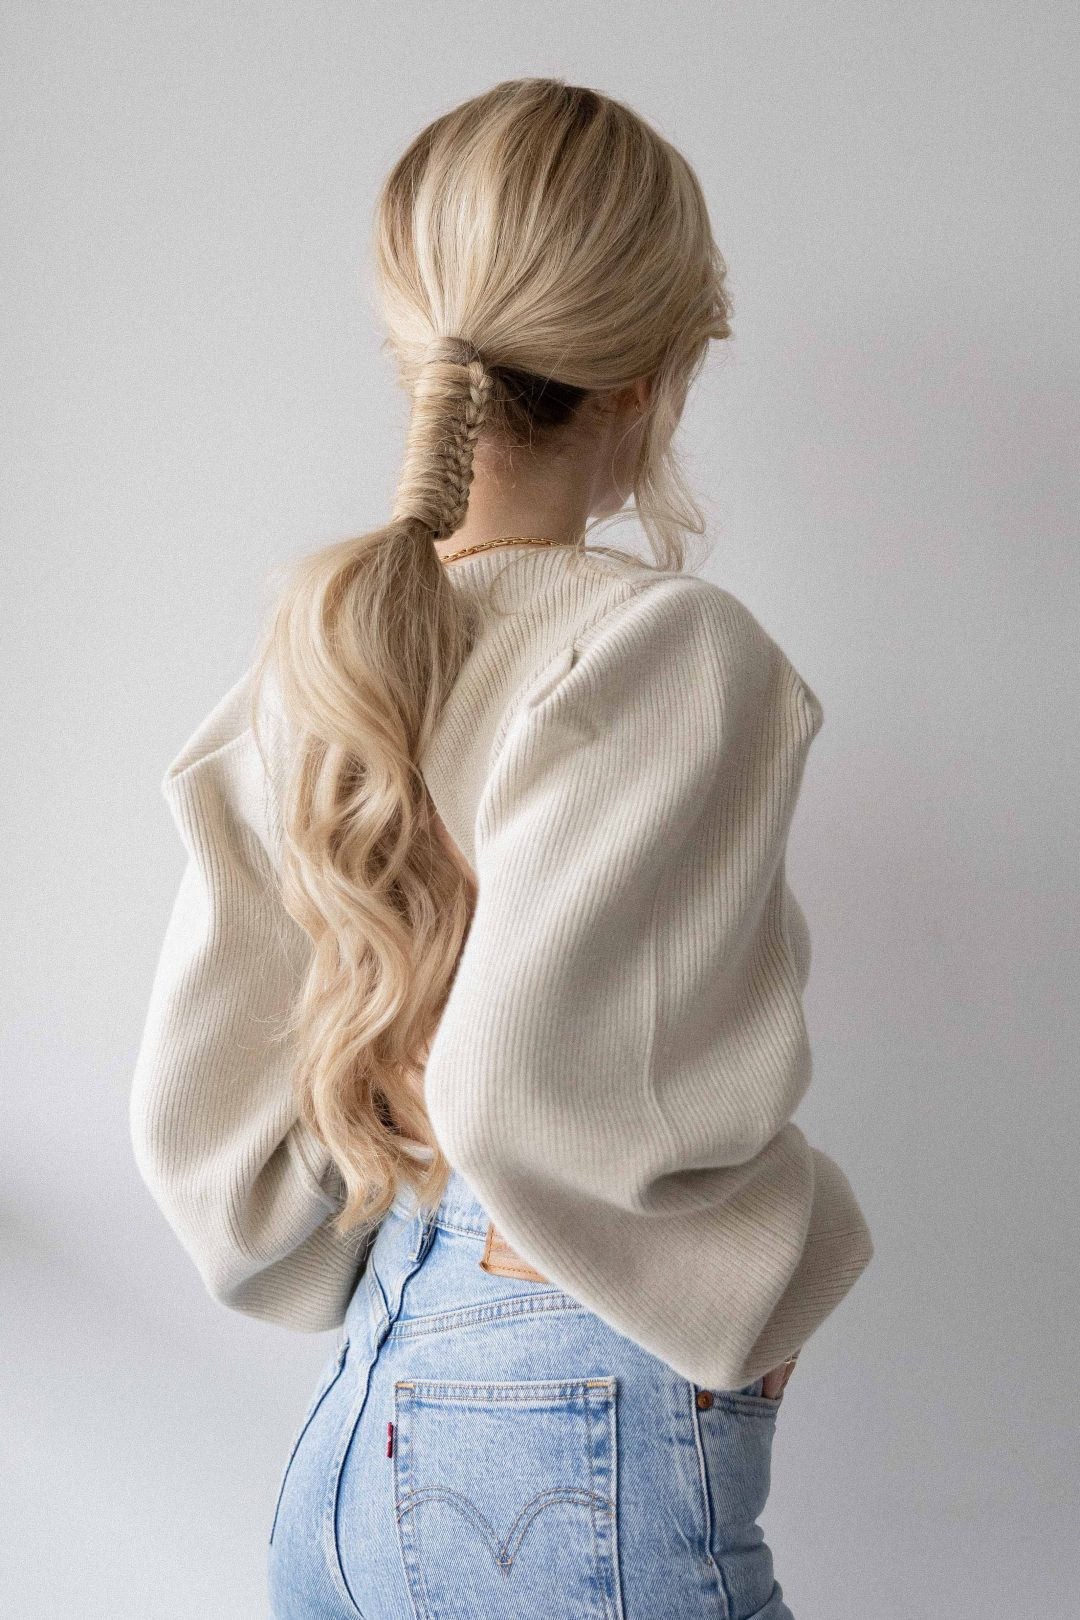 UNIQUE BRAIDED PONYTAIL HAIR TUTORIAL FOR THE HOLIDAYS - Alex Gaboury